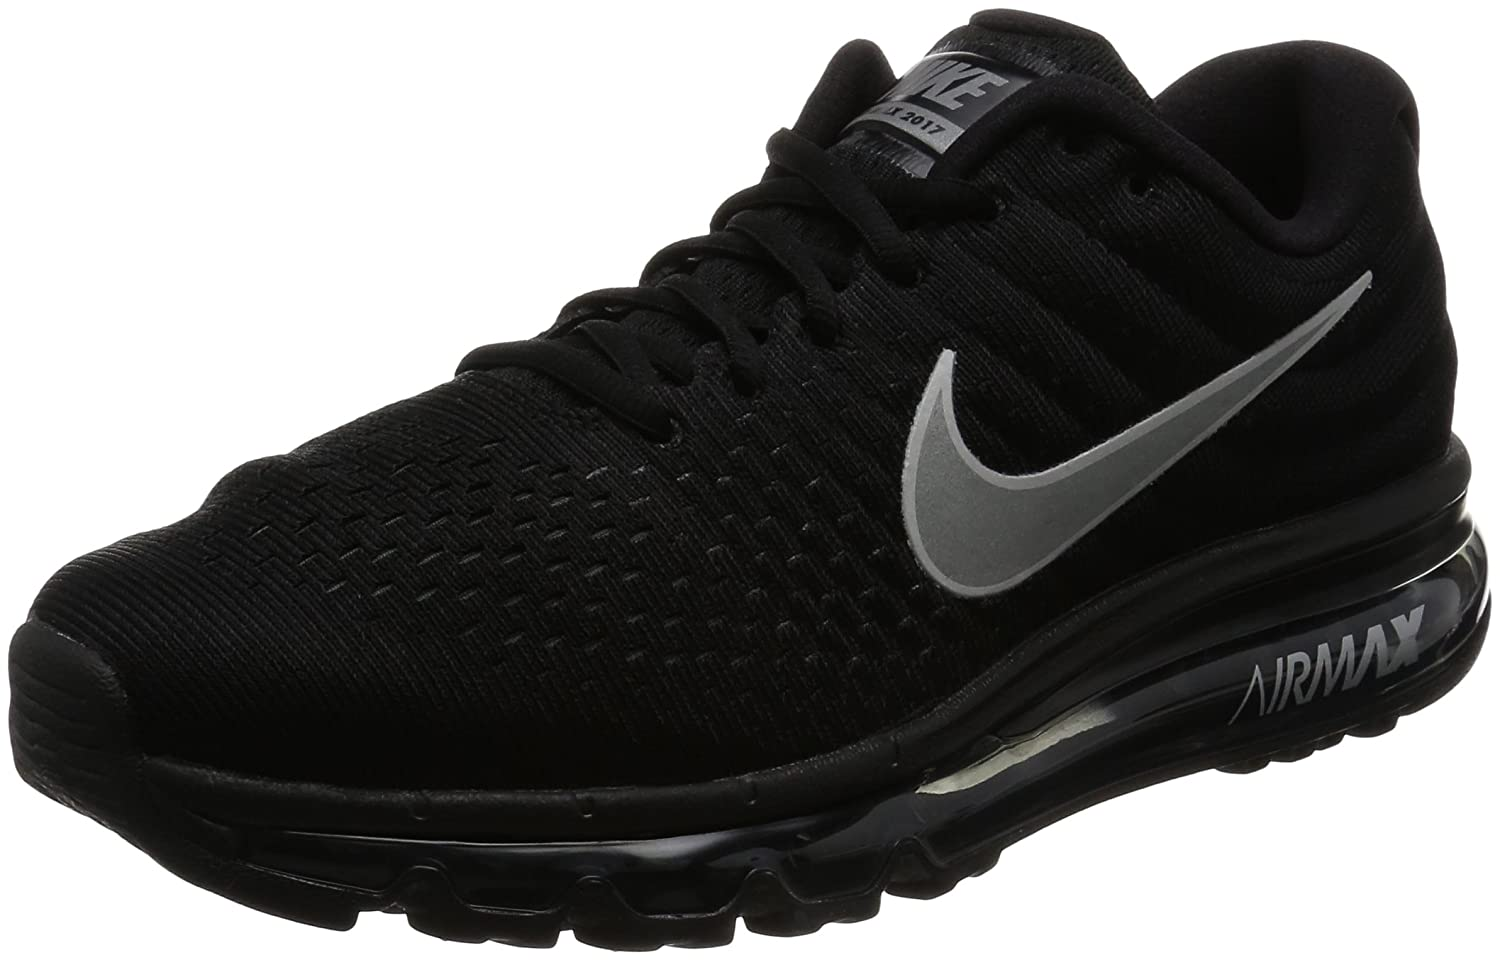 Nike Men's Air Max 2017 Running Shoes (7.5 (M) US, Black/White/Anthracite)